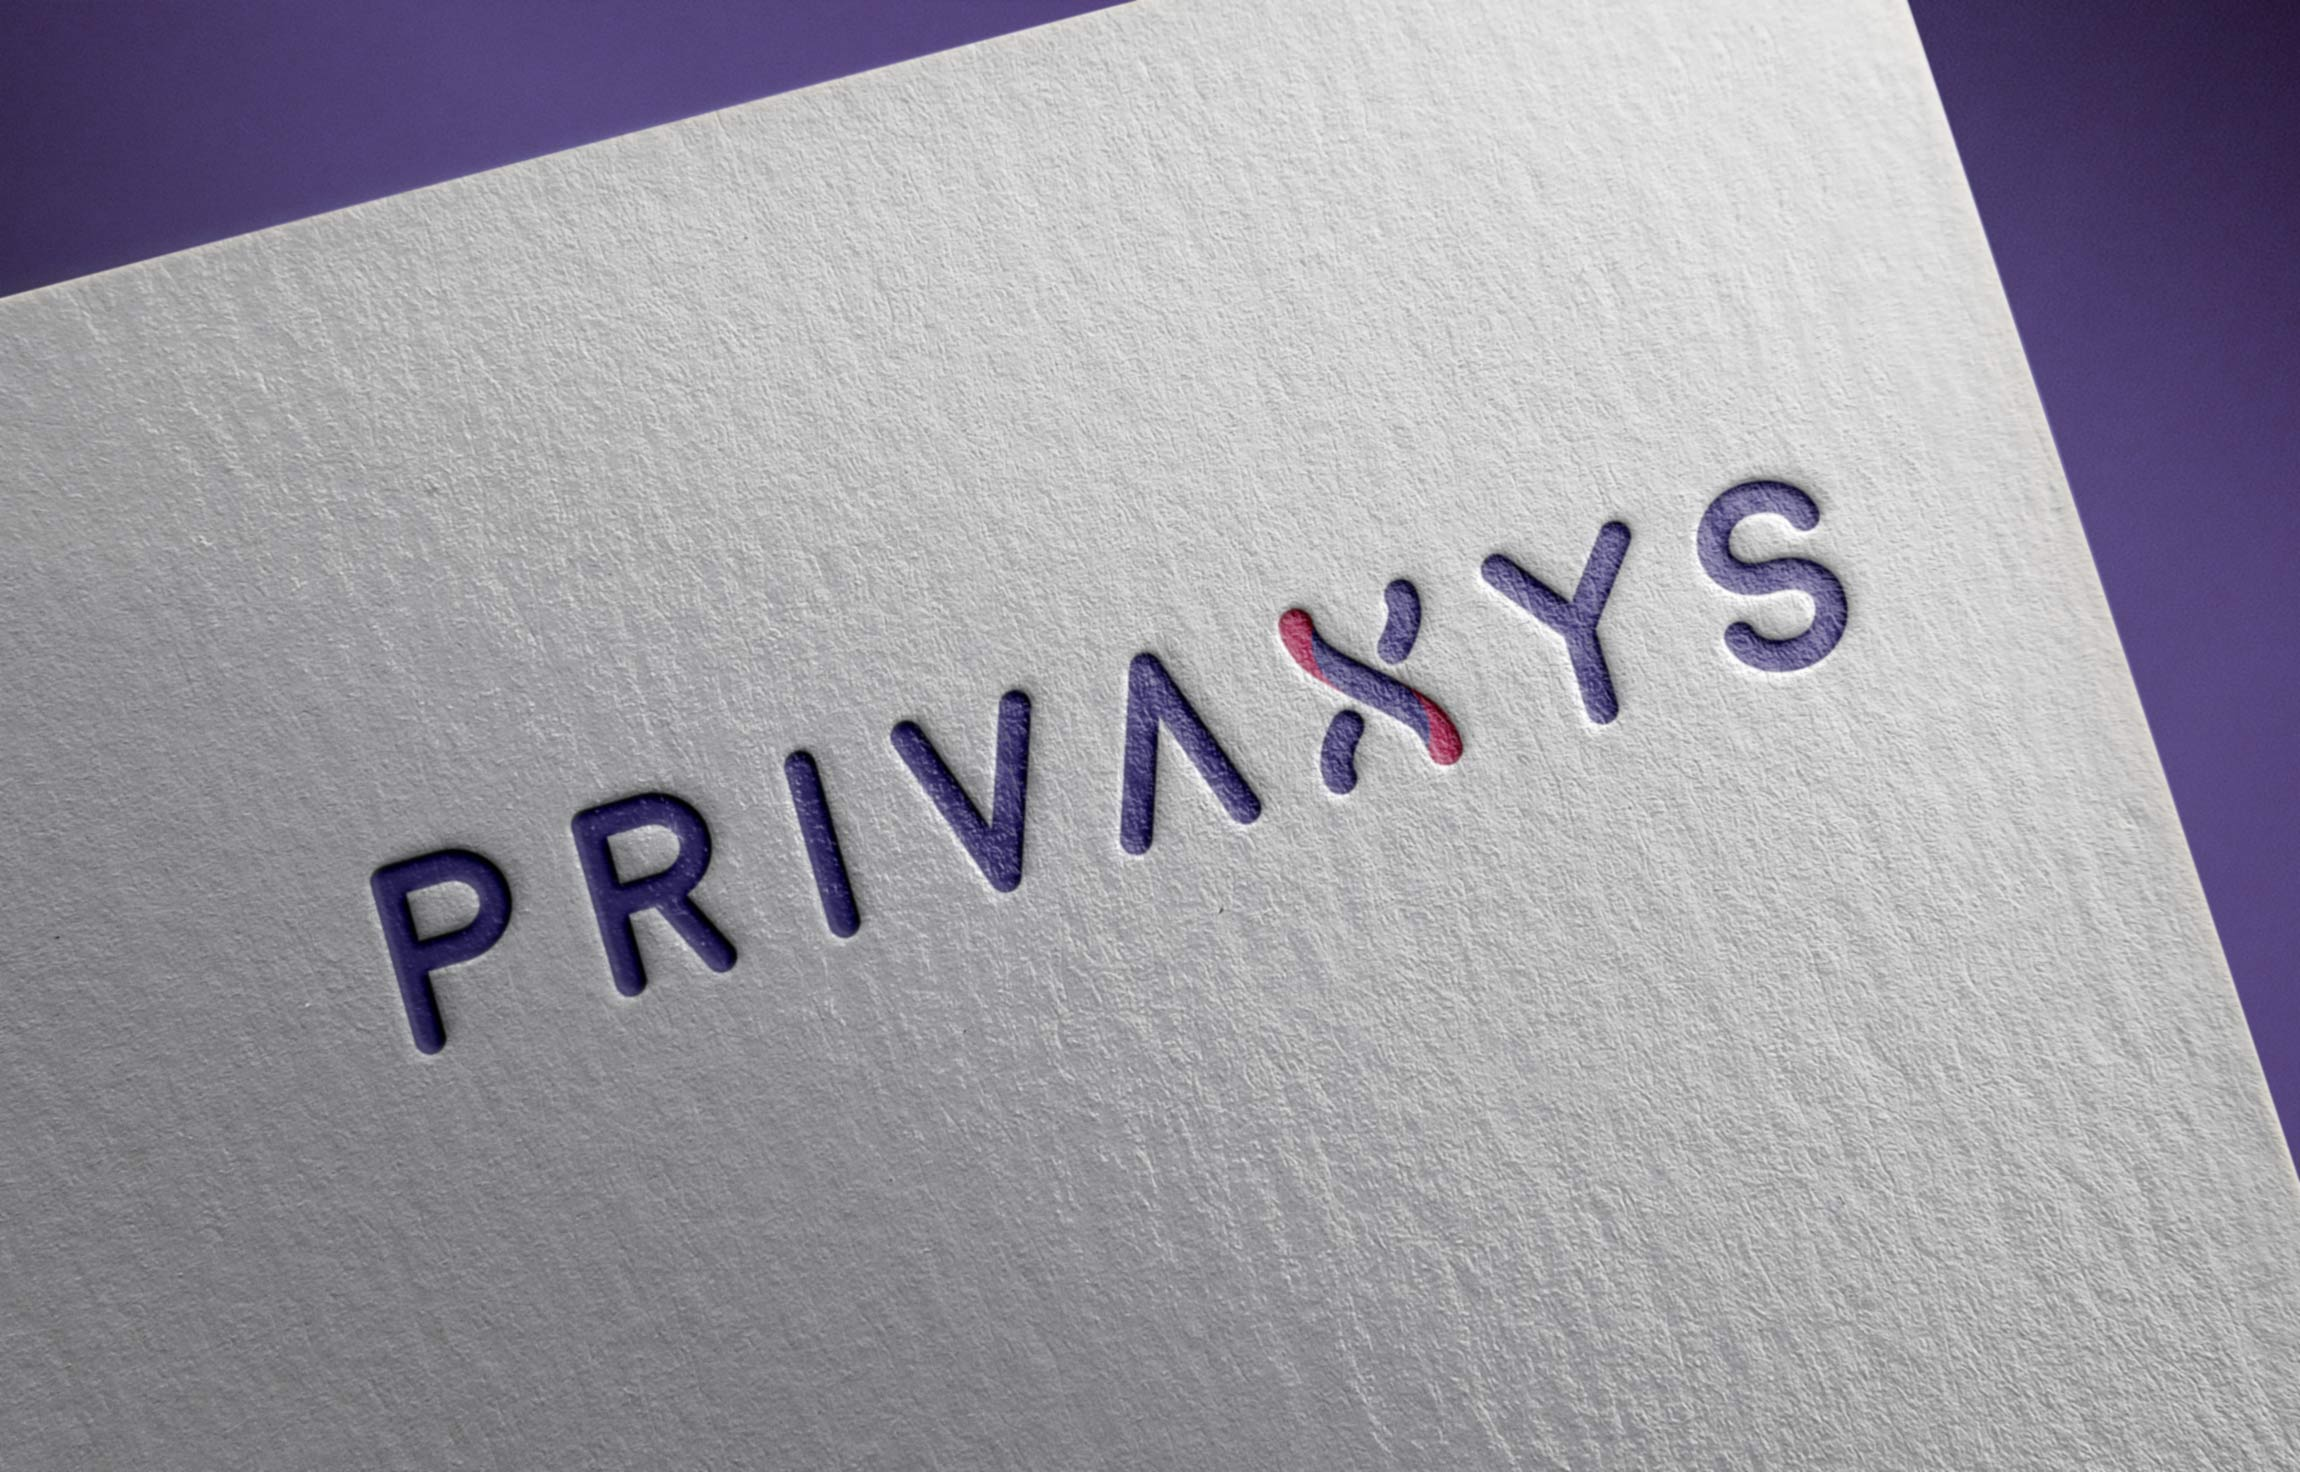 privaxys_logo Privaxys